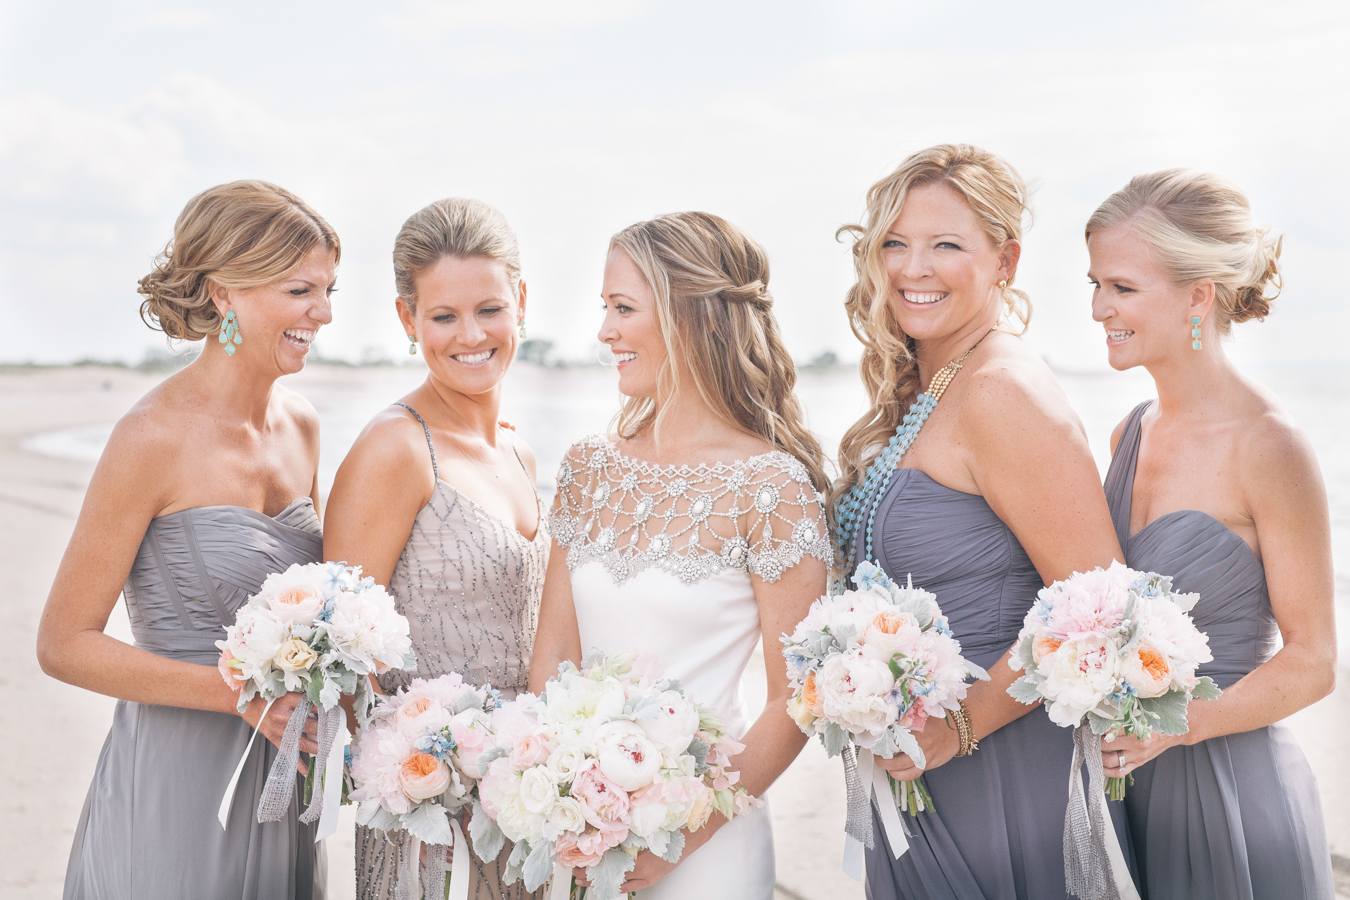 Romantic New York Wedding at Water's Edge from Kelly Kollar Photography